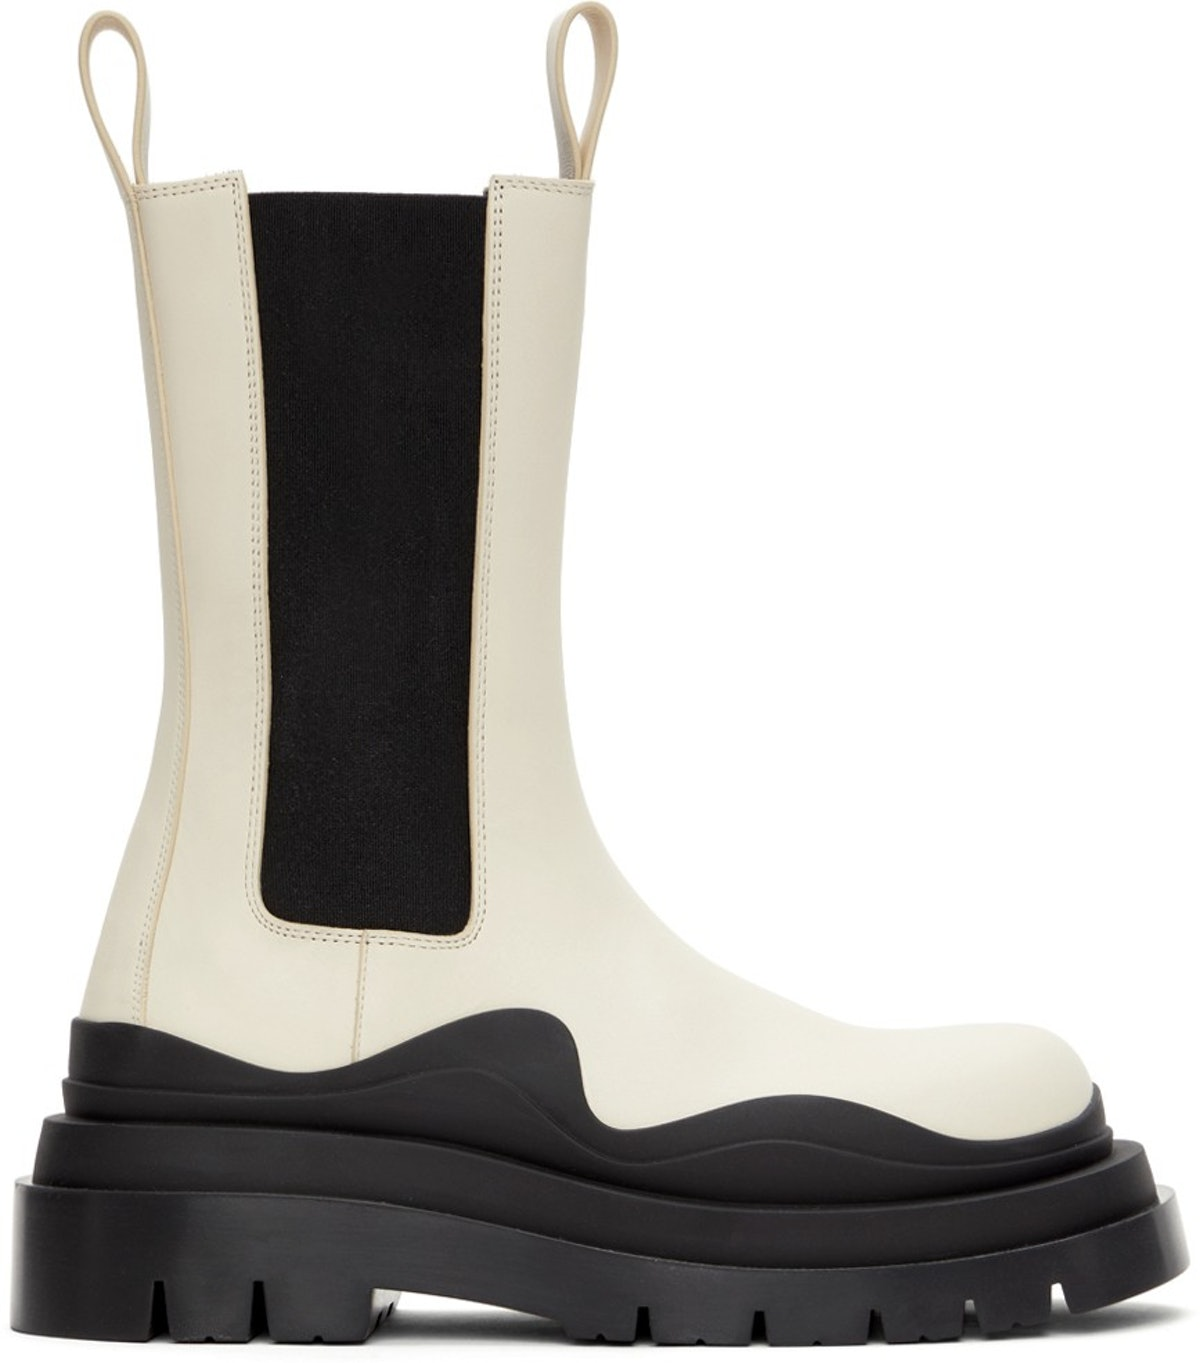 Off-White & Black 'The Tire' Boots